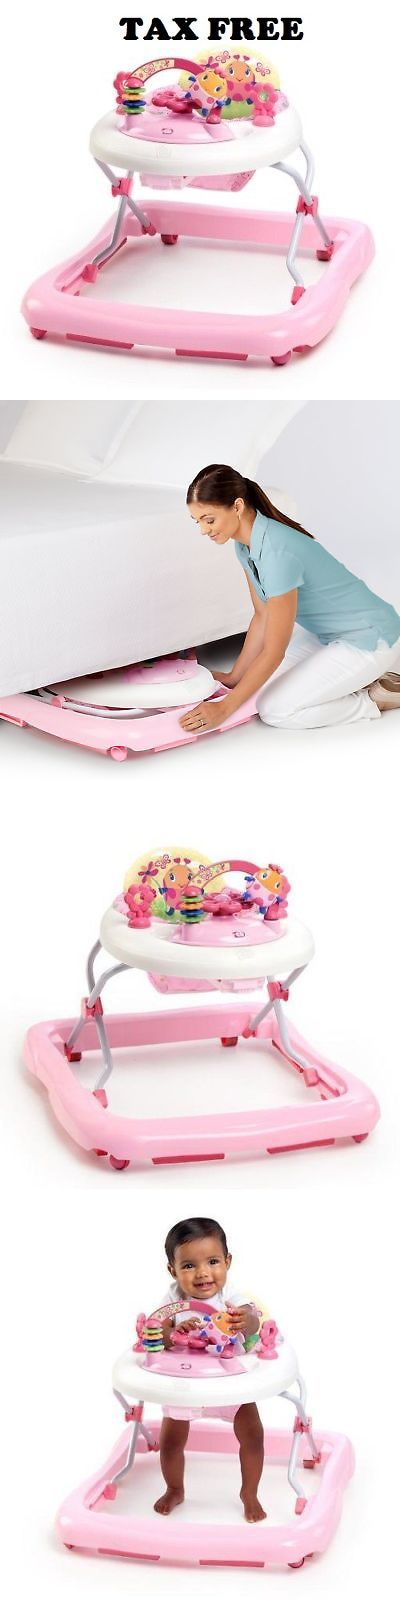 baby and kid stuff: Infant Baby Girl Activity Walker Jumper Bouncer Walk Stand Activity Seat Toy New -> BUY IT NOW ONLY: $49.49 on eBay!